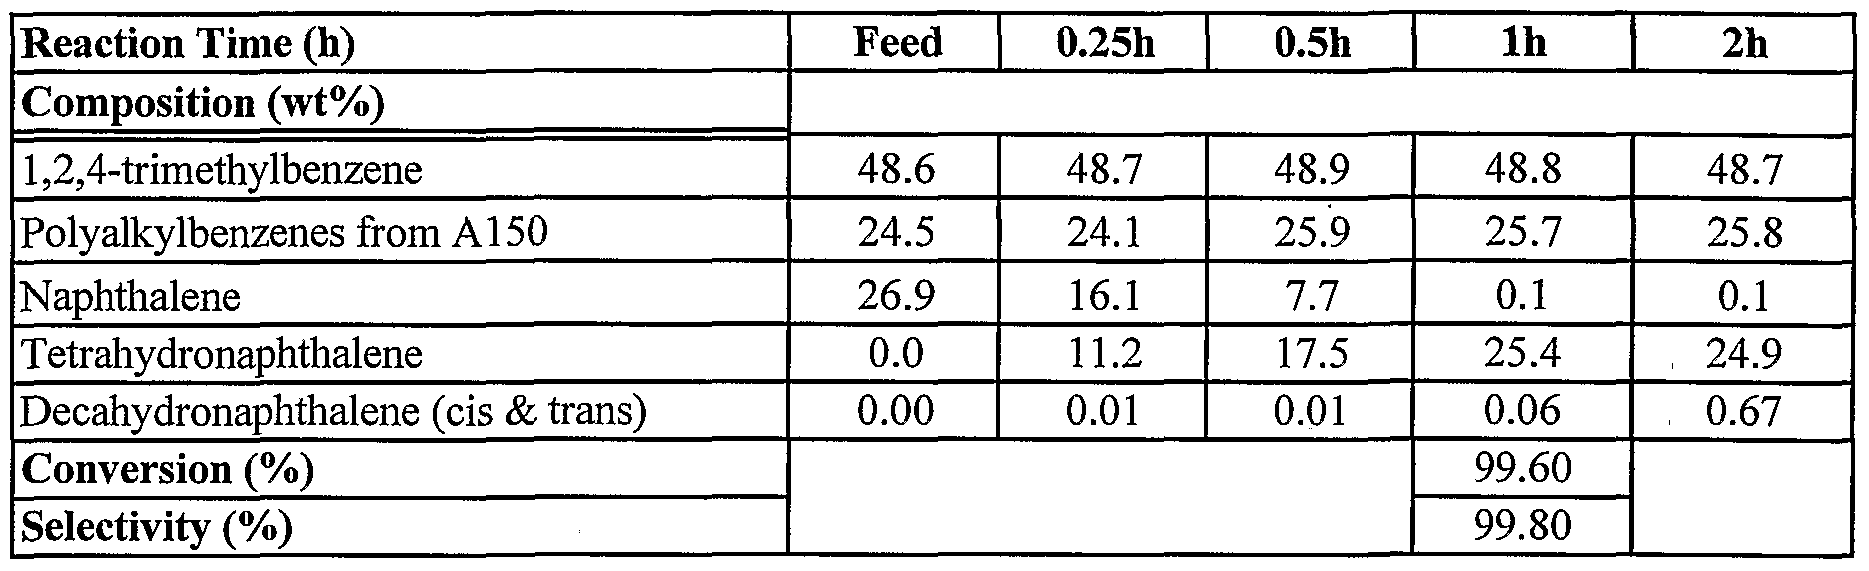 WO2004094566A1 - Reduction of naphthalene content in